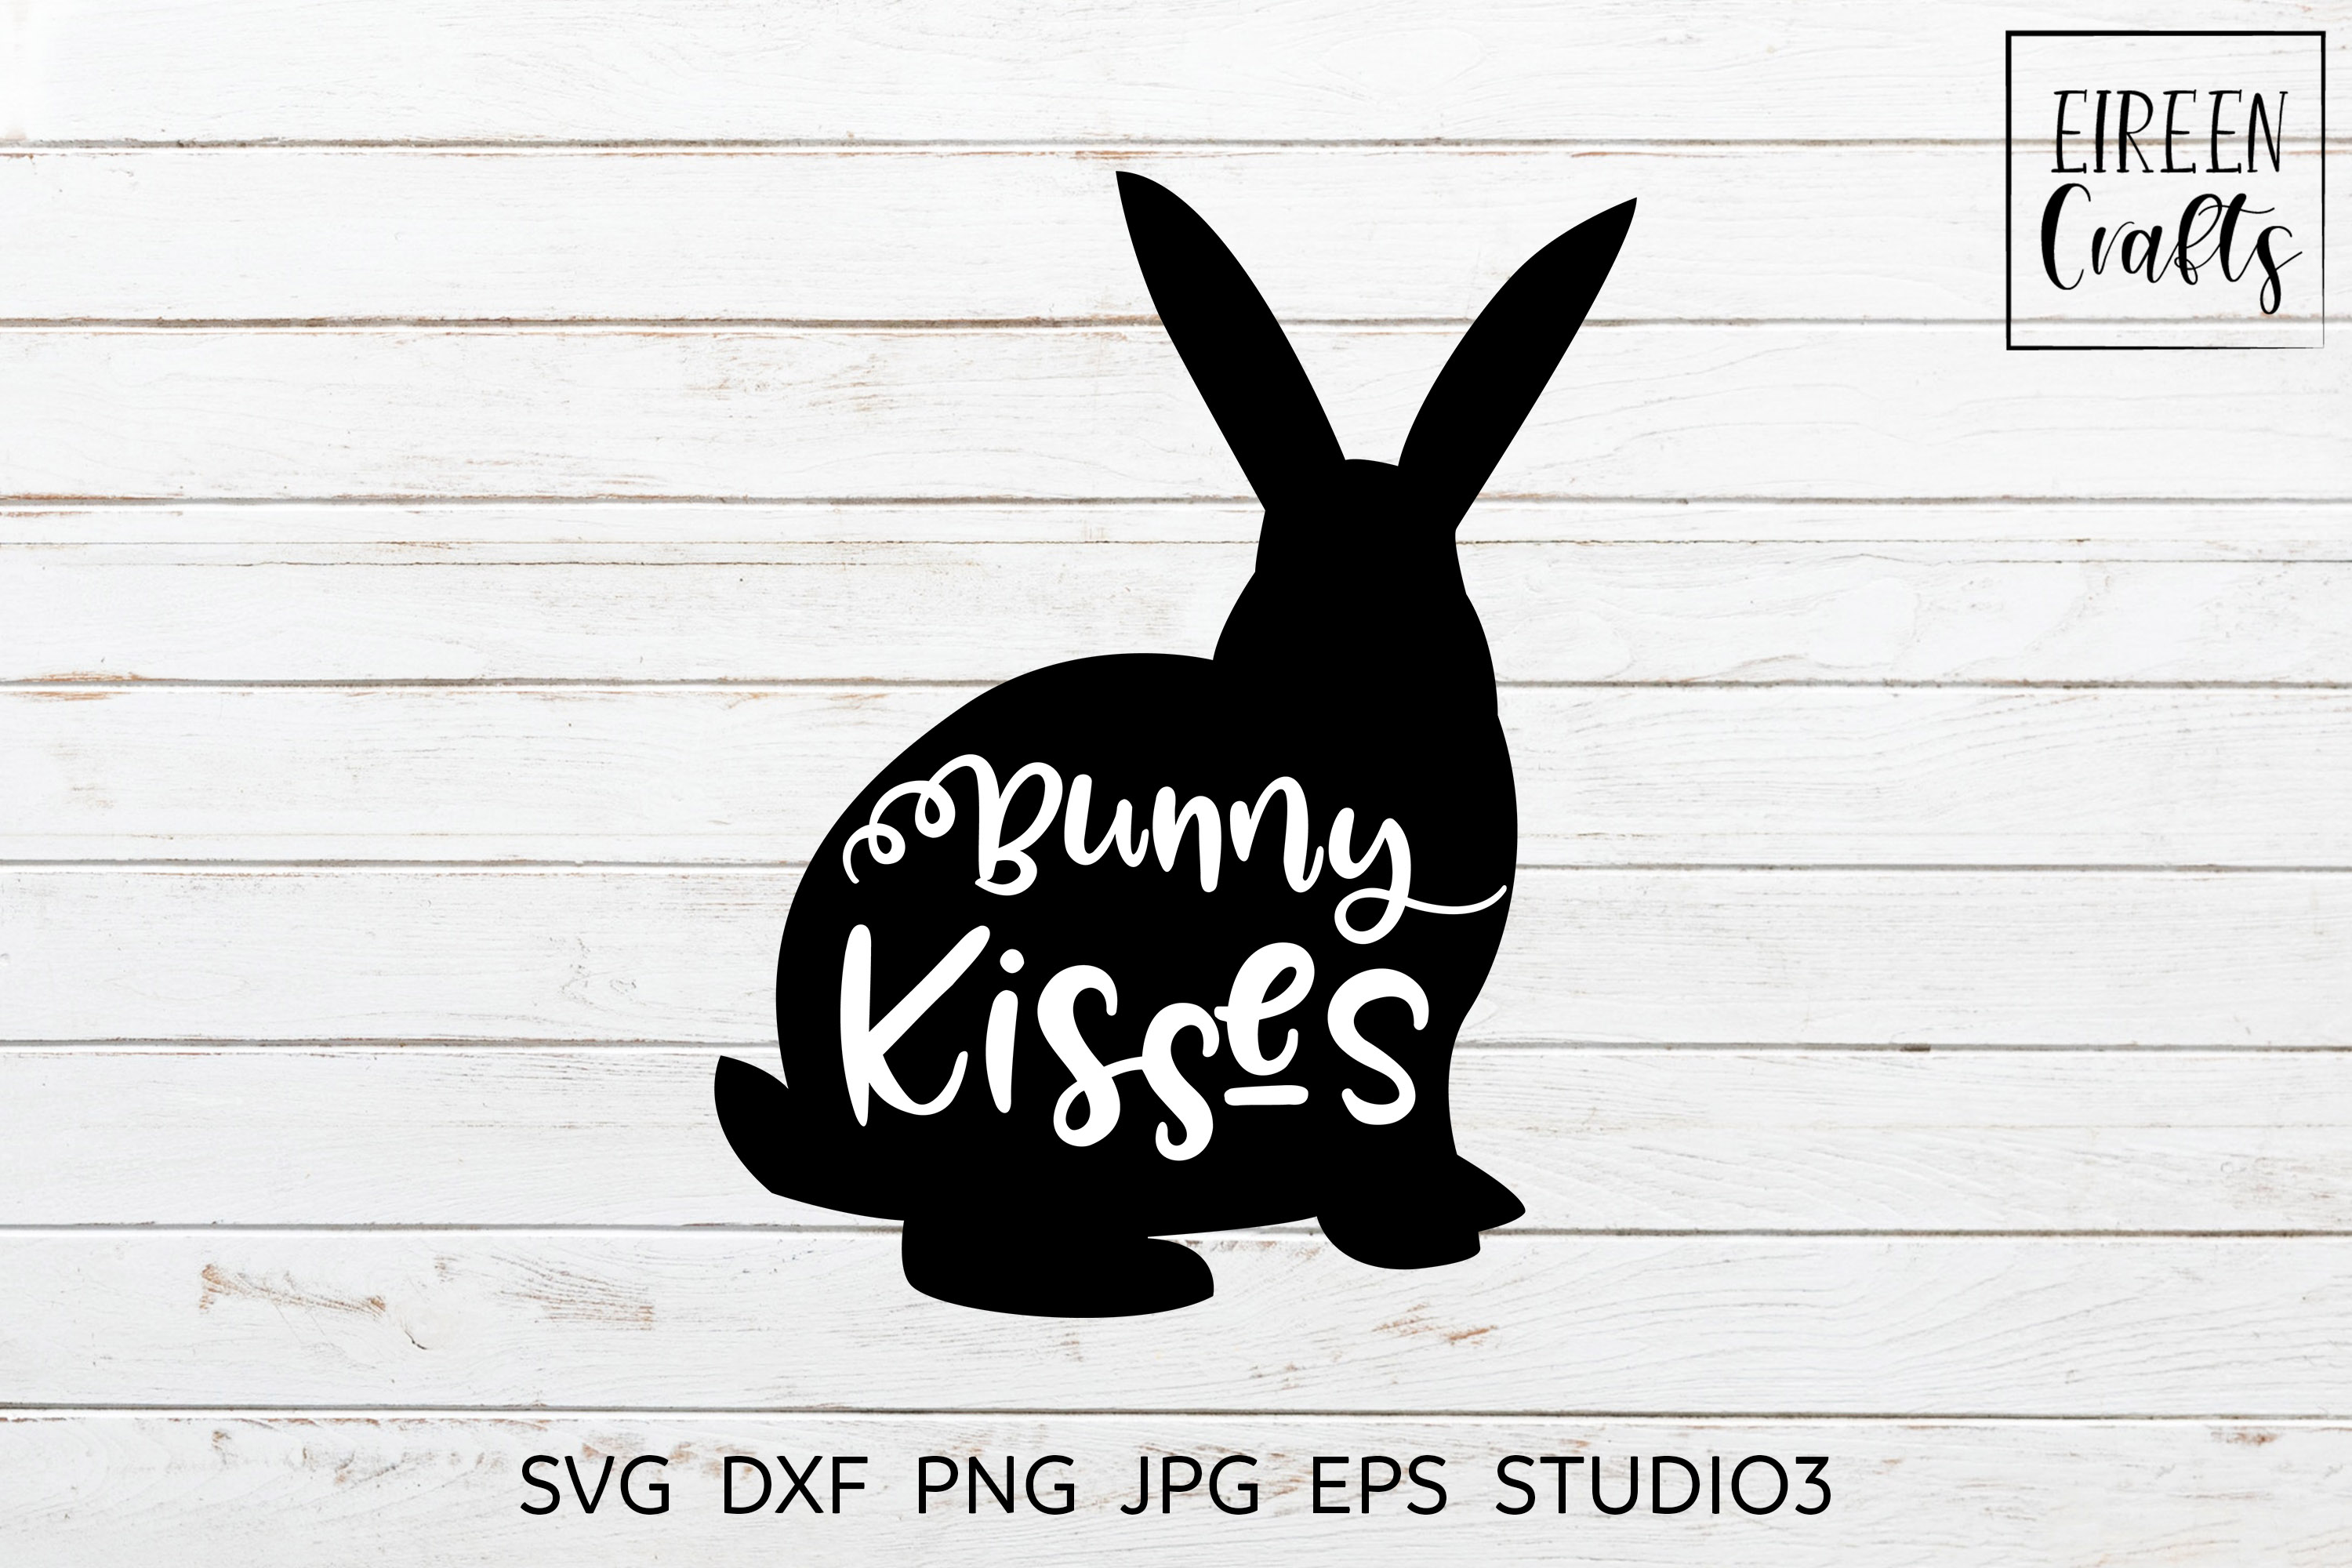 Bunny kisses SVG - cut file for Cricut & Silhouette example image 3